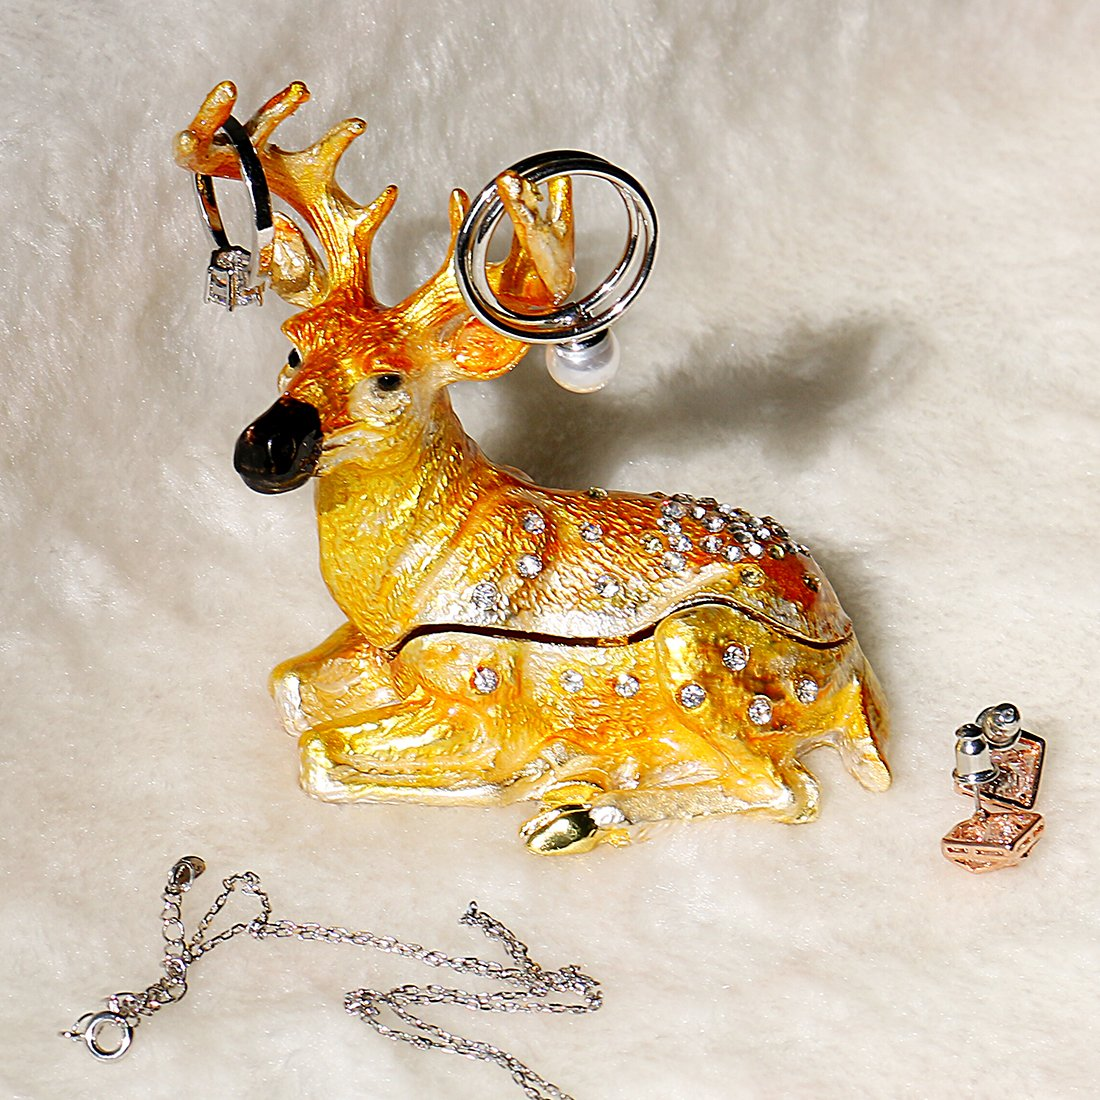 YUFENG Cute Deer Trinket Box Hinged for Girls Animal Figurine Collectible Wedding Ring Holder Favor Metal Table Centerpiece by YUFENG (Image #2)